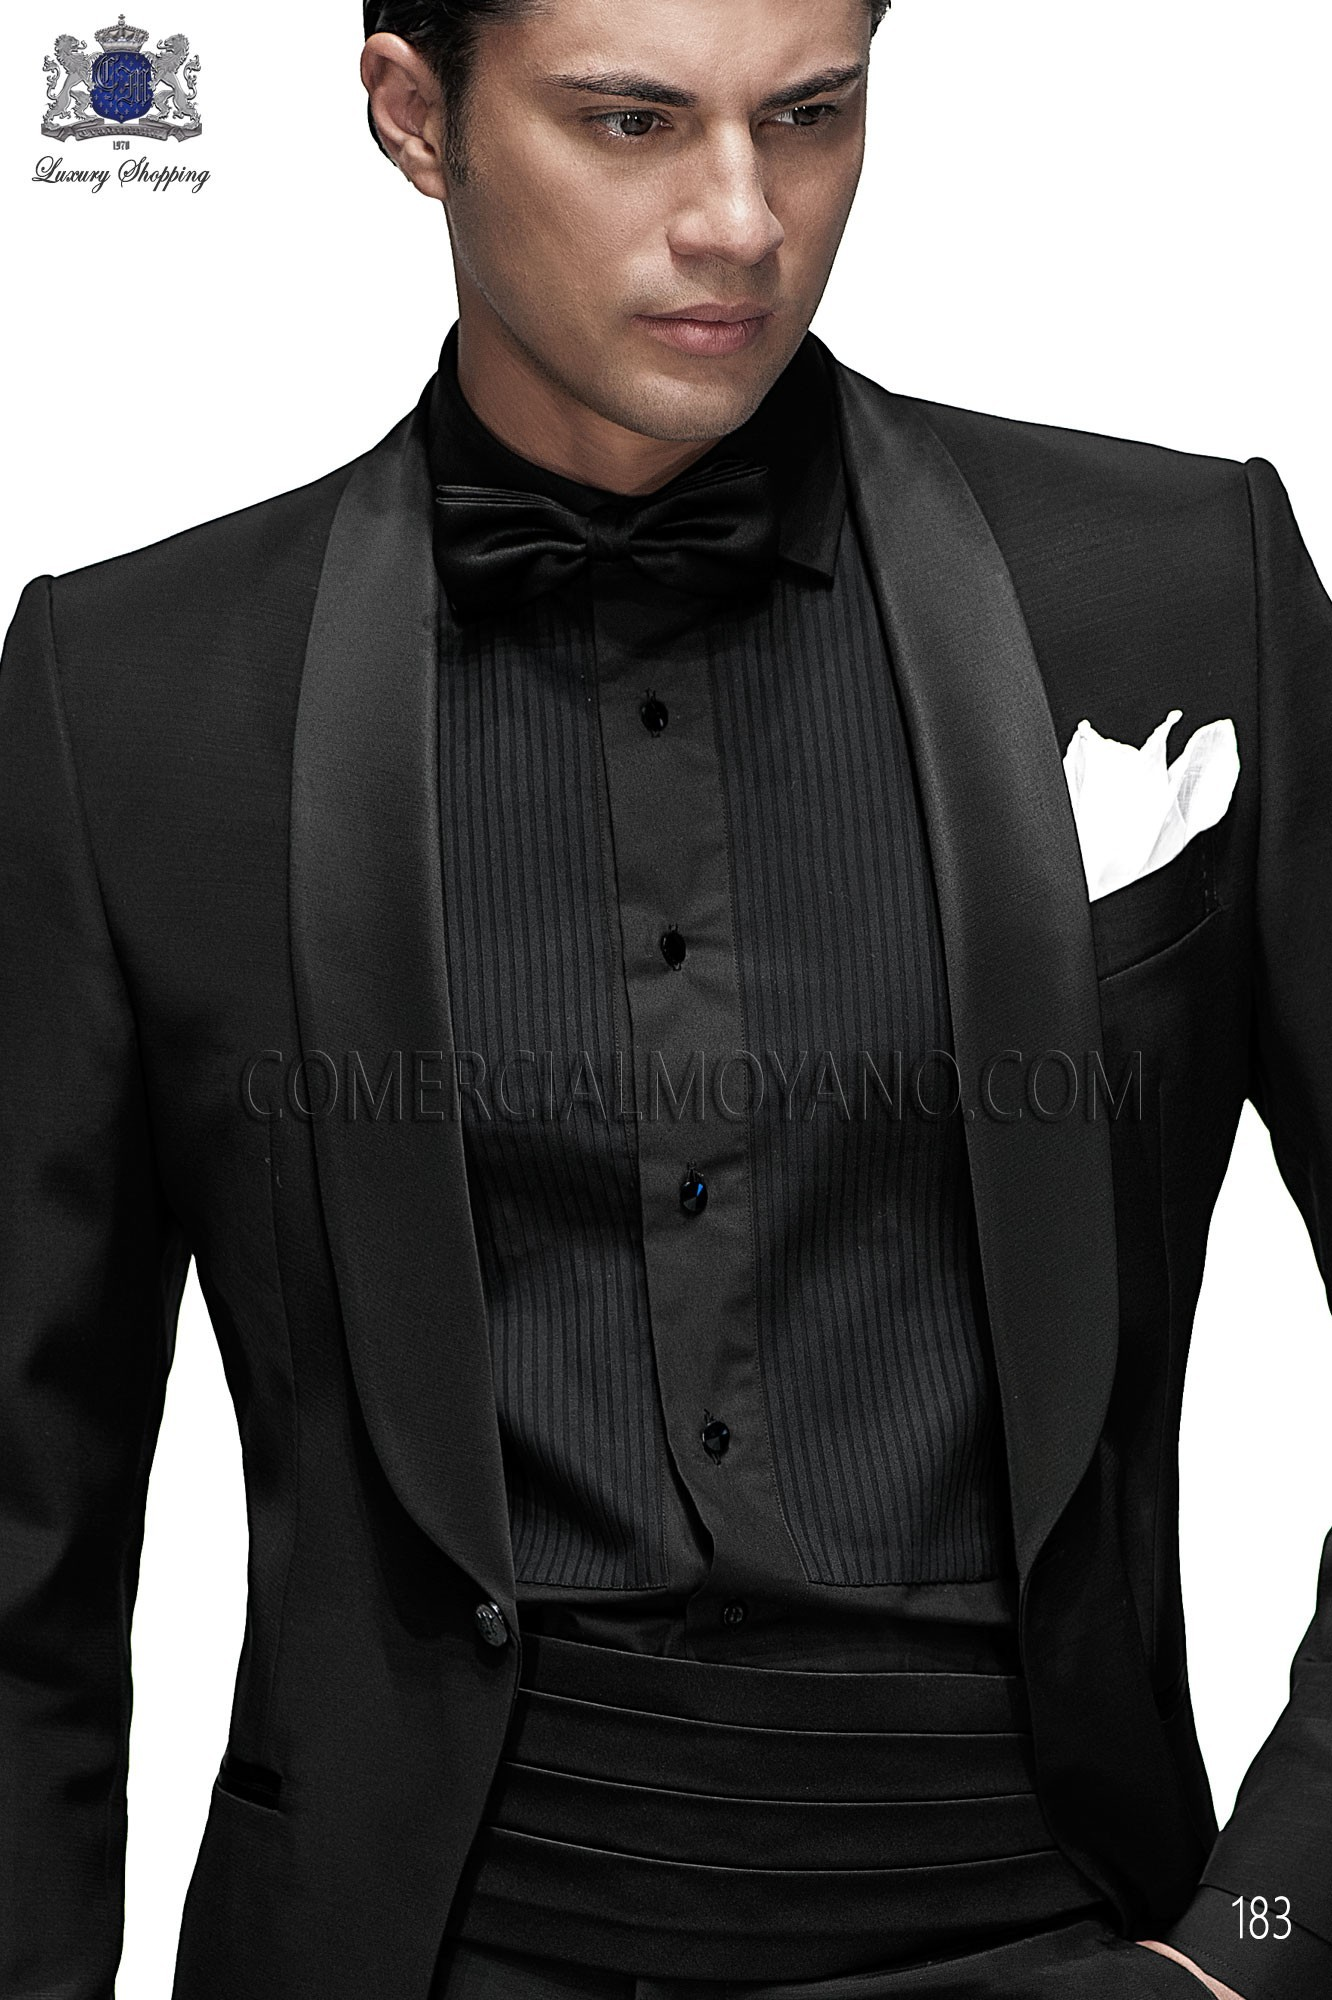 Black Tie black men wedding suit, model: 183 Ottavio Nuccio Gala ...